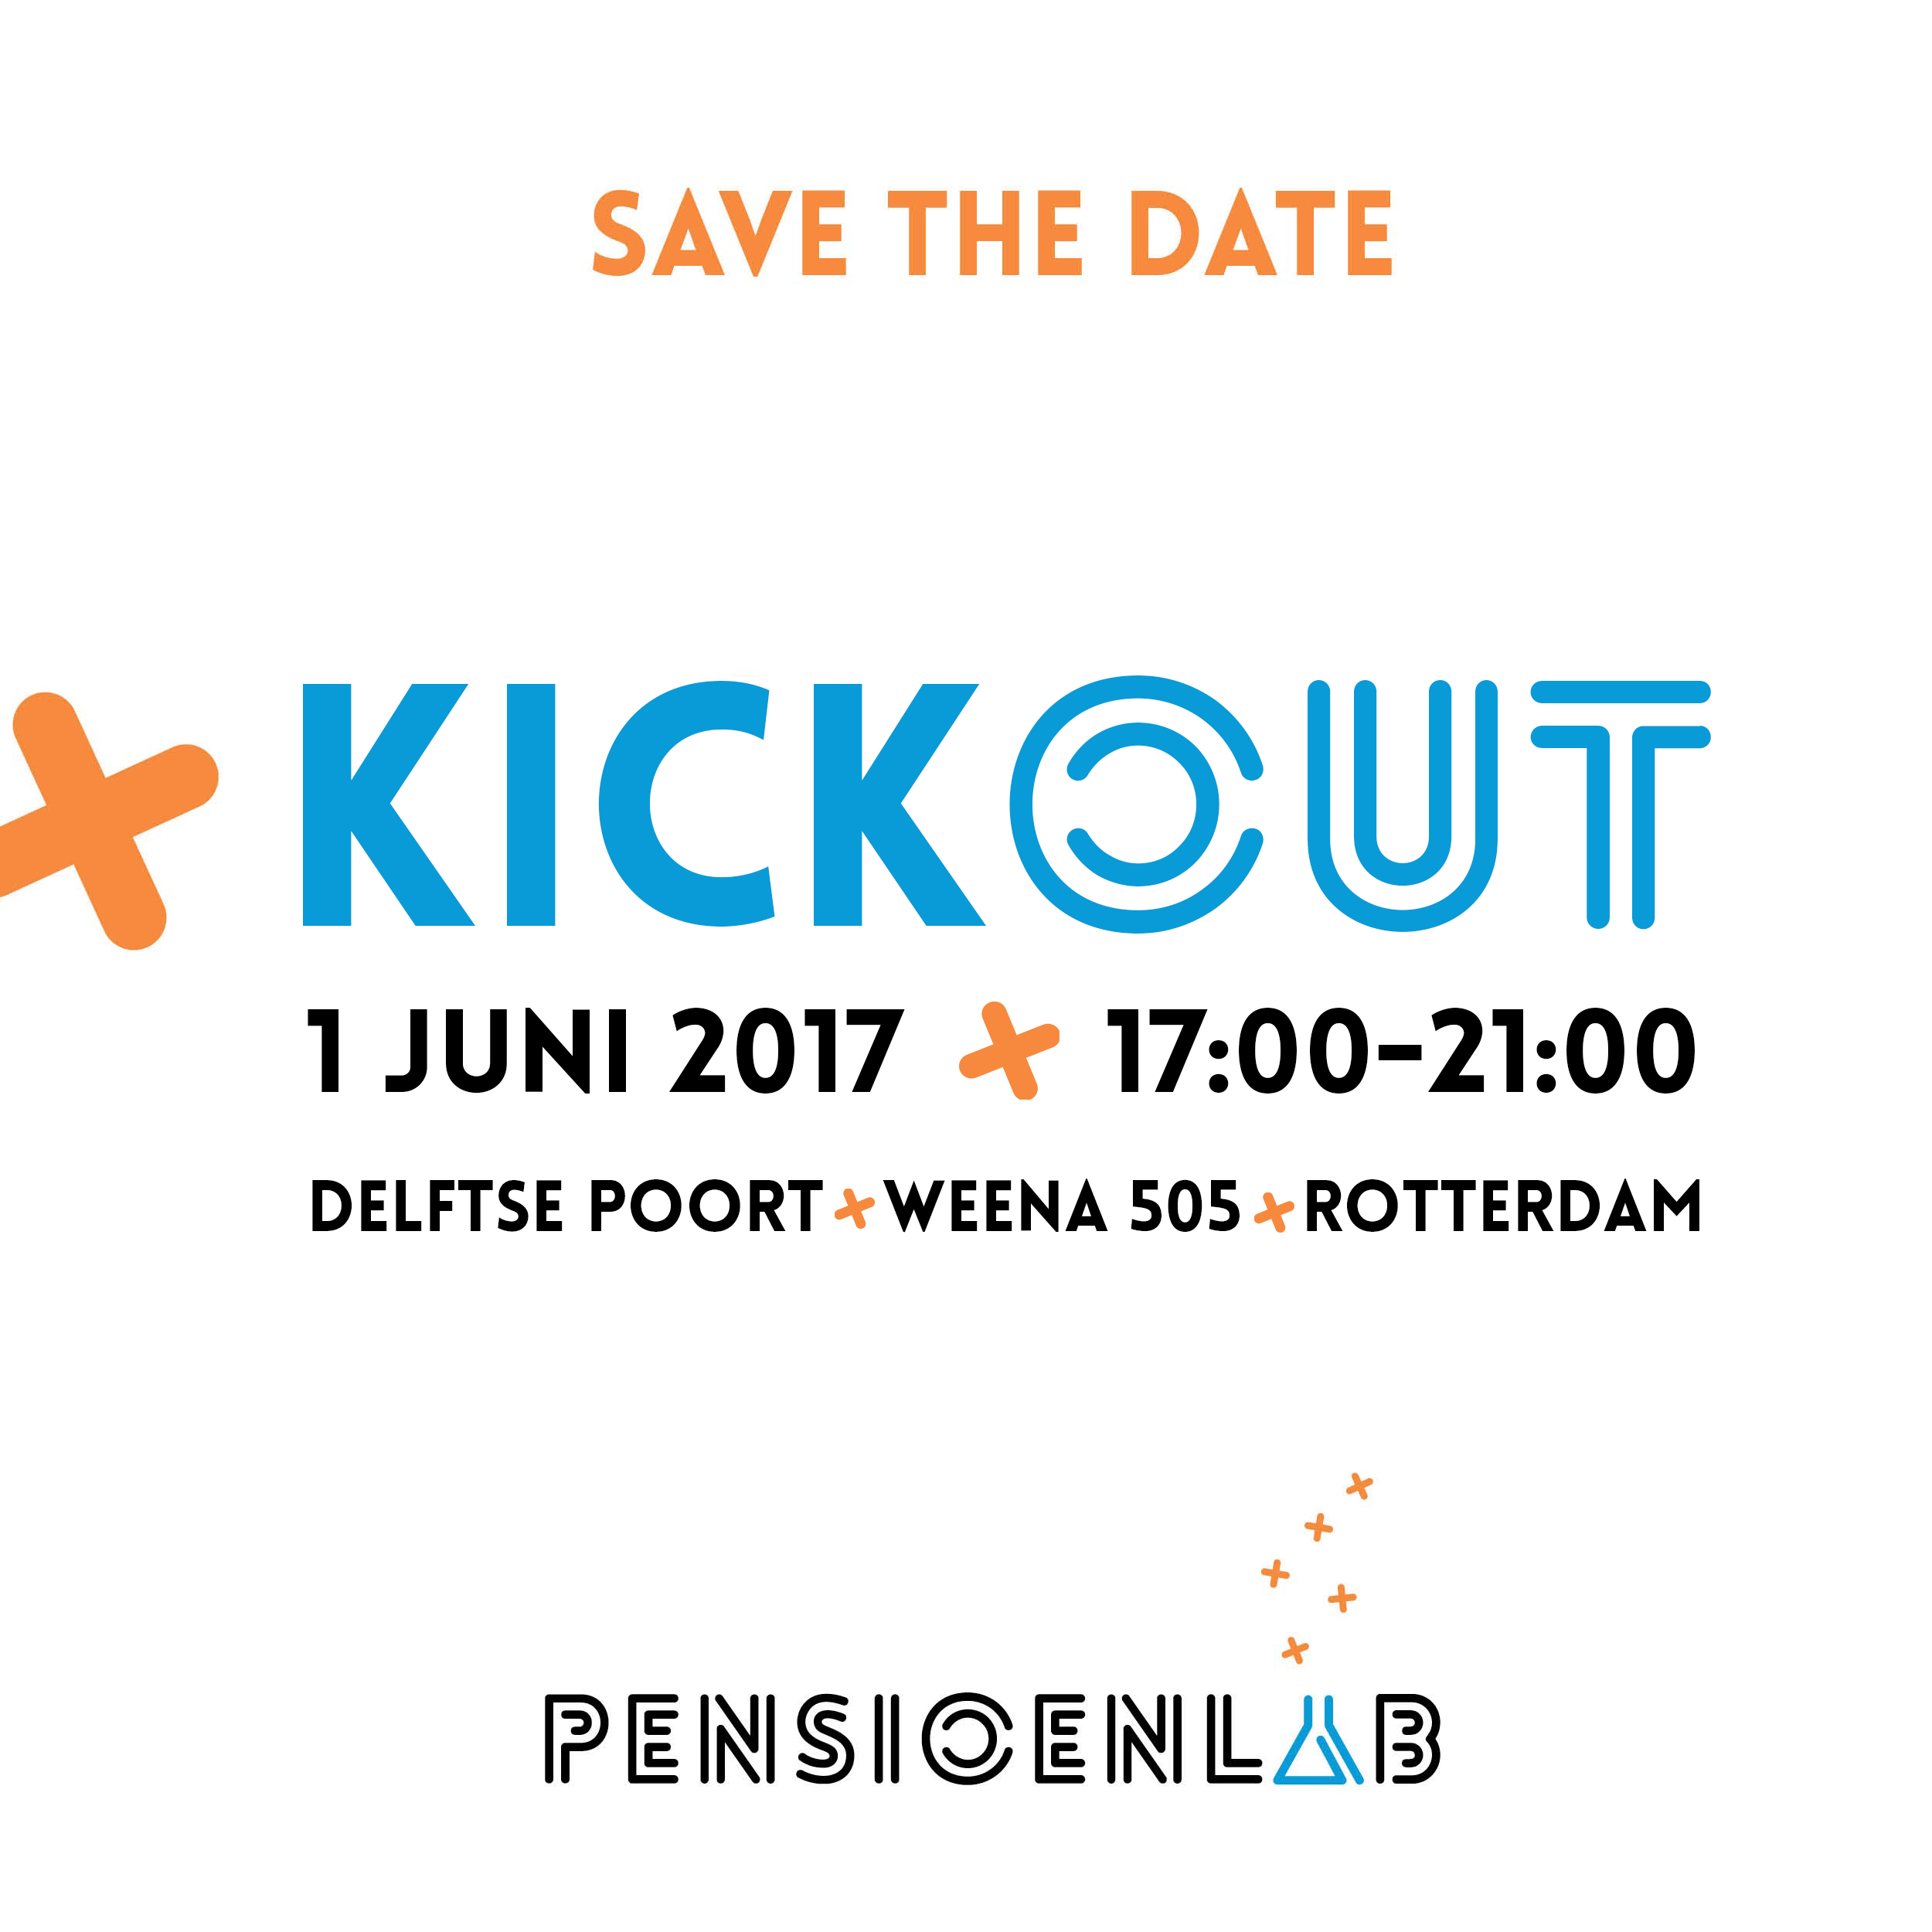 Kickout Save the date